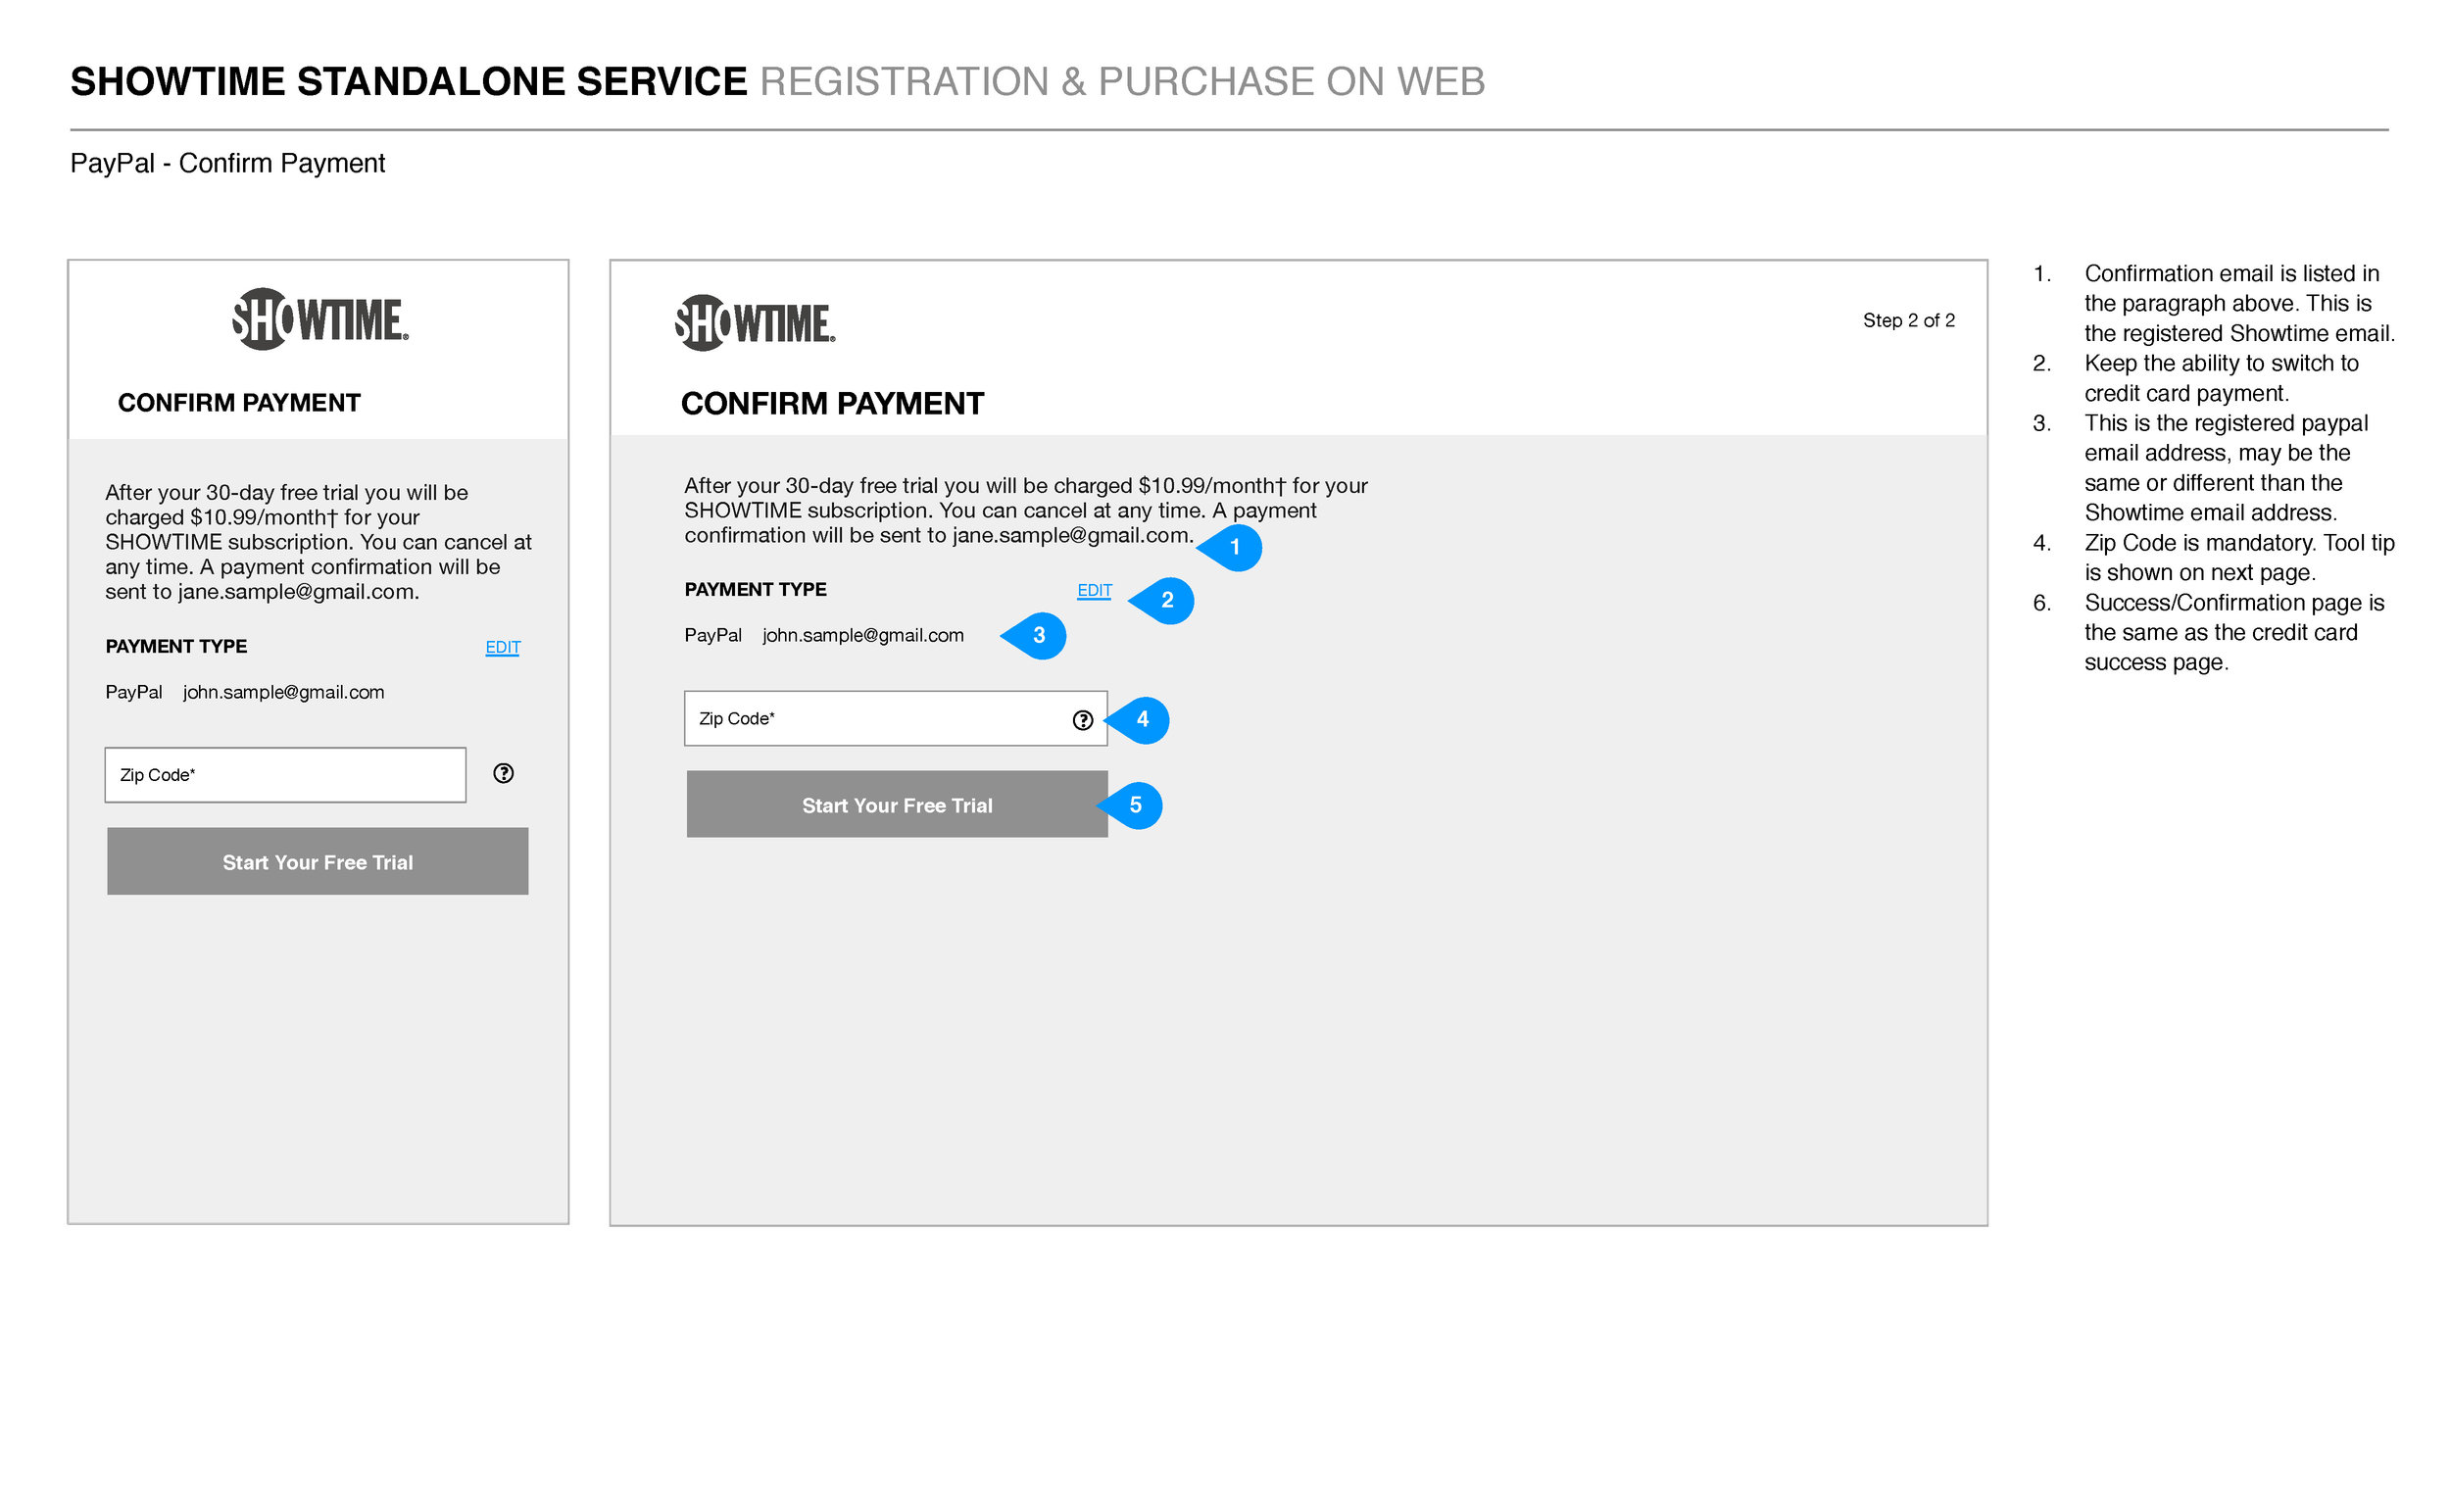 Showtime_Purchase_Web_v9_Page_14.jpg